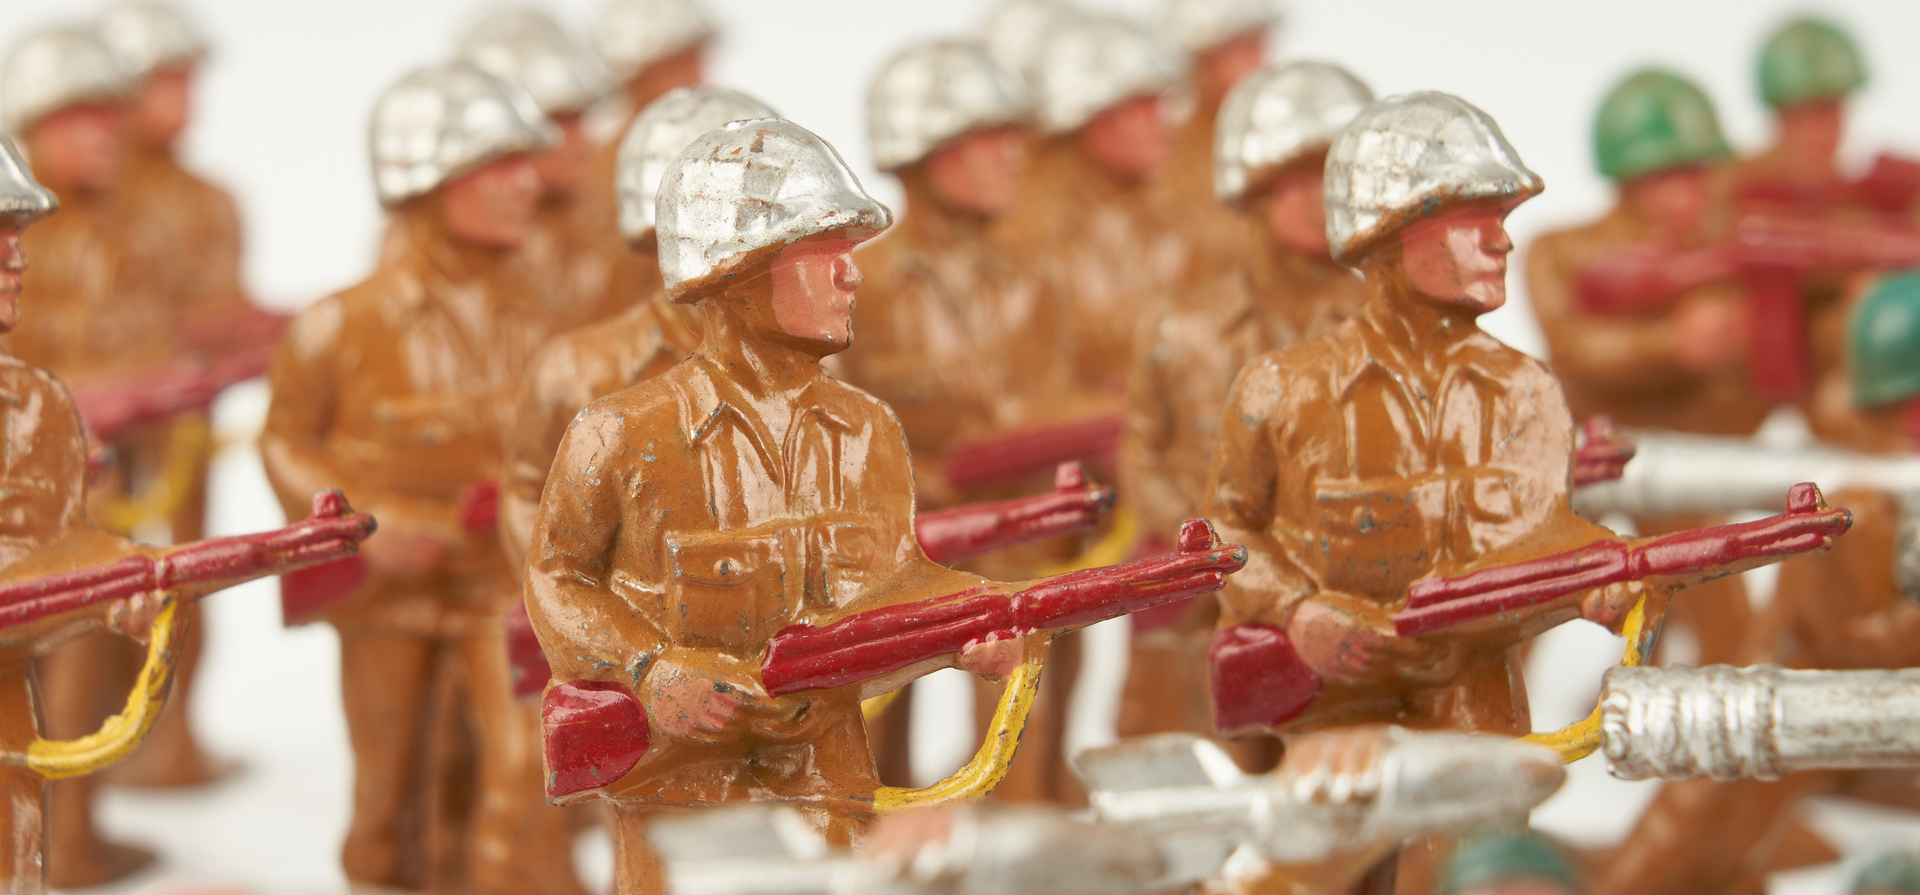 Lot 797: 207 Cast Metal WWI & II Toy Soldiers, incl. Manoil